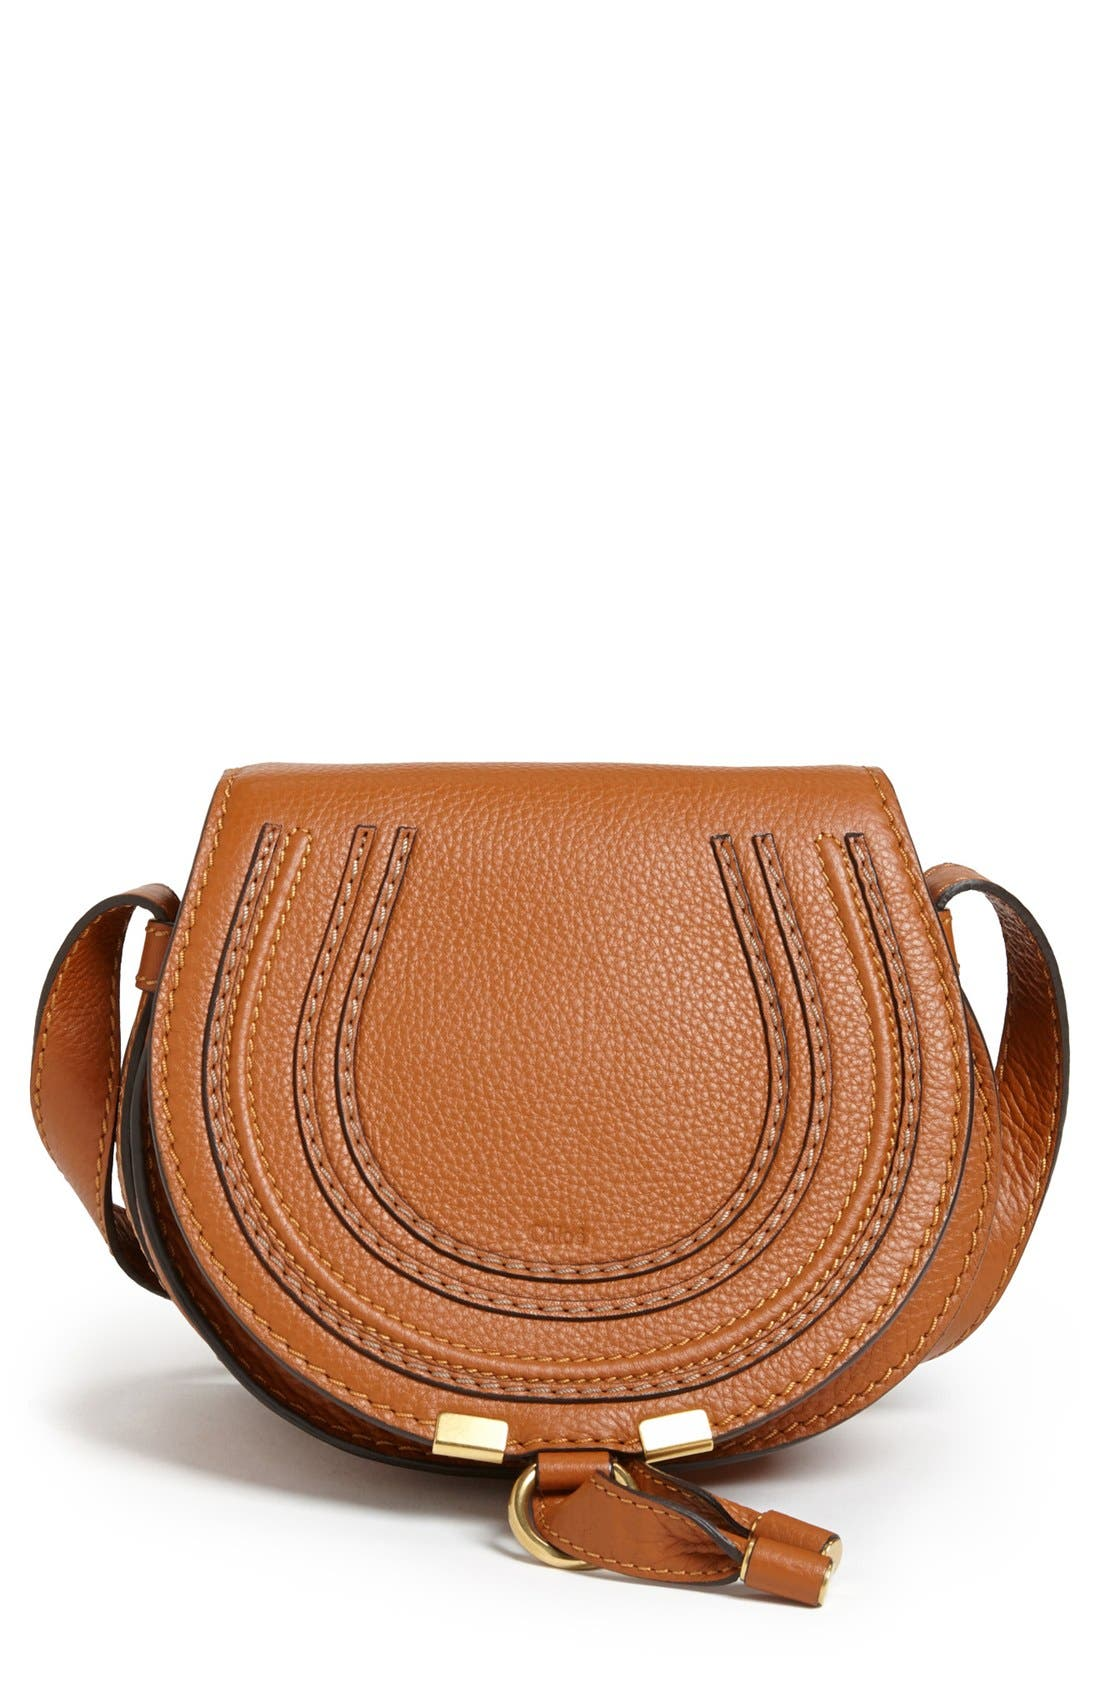 CHLOÉ Mini Marcie Leather Crossbody Bag